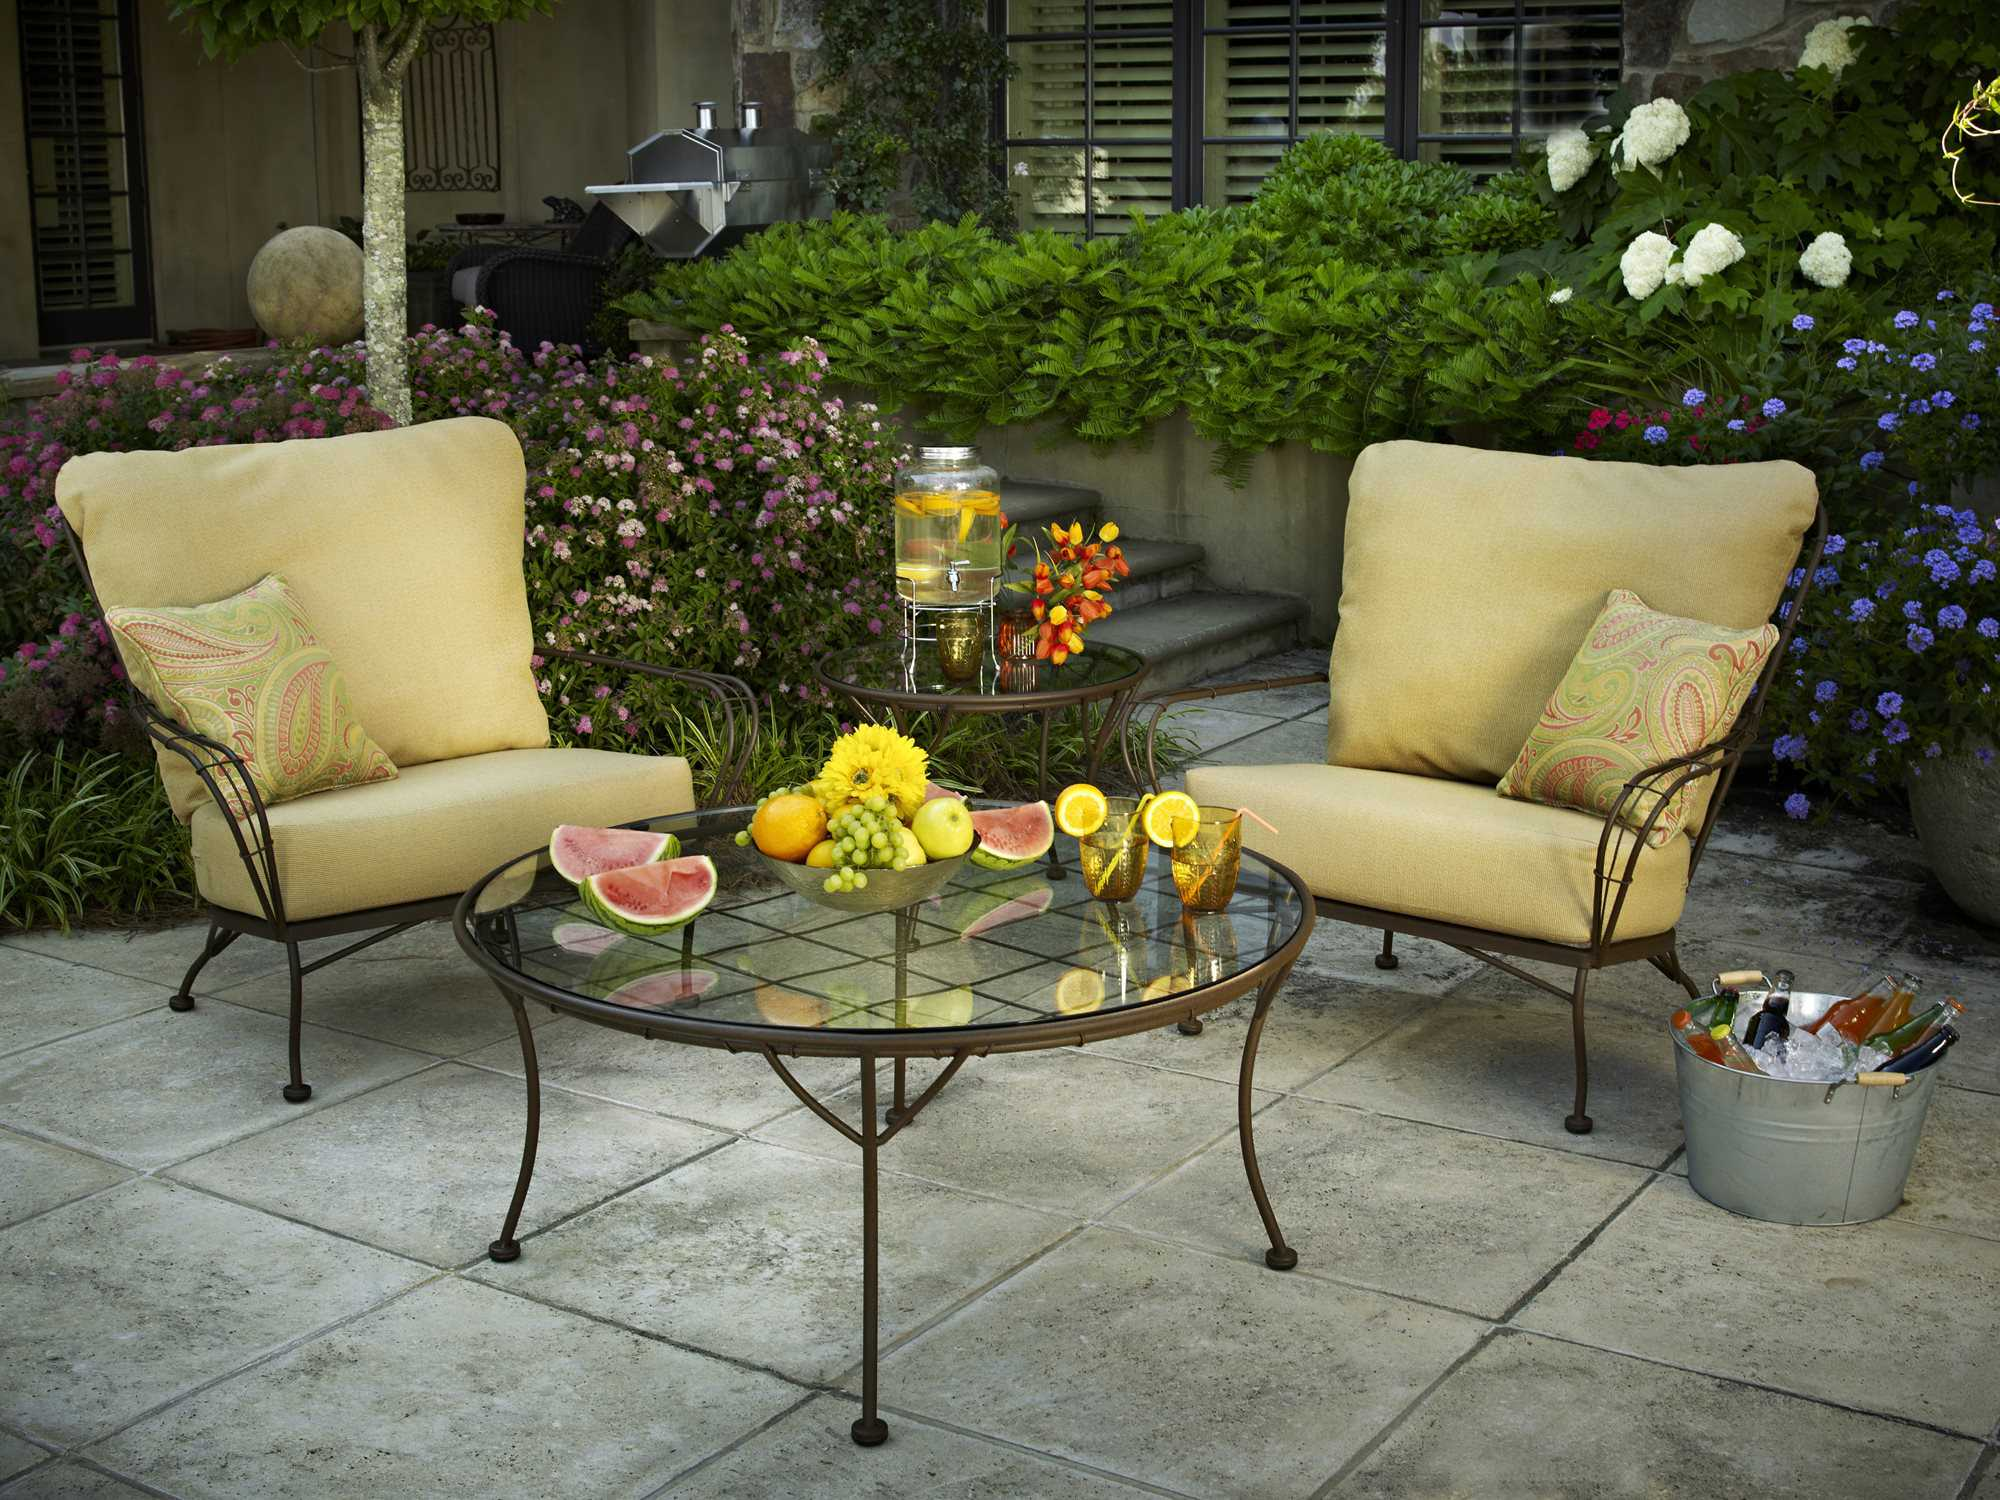 round top chat Tropitone manufactures and sells durable, very high quality outdoor patio furniture, outdoor furniture and pool furniture made of cast and extruded aluminum it also manufactures patio umbrellas and market umbrellas.